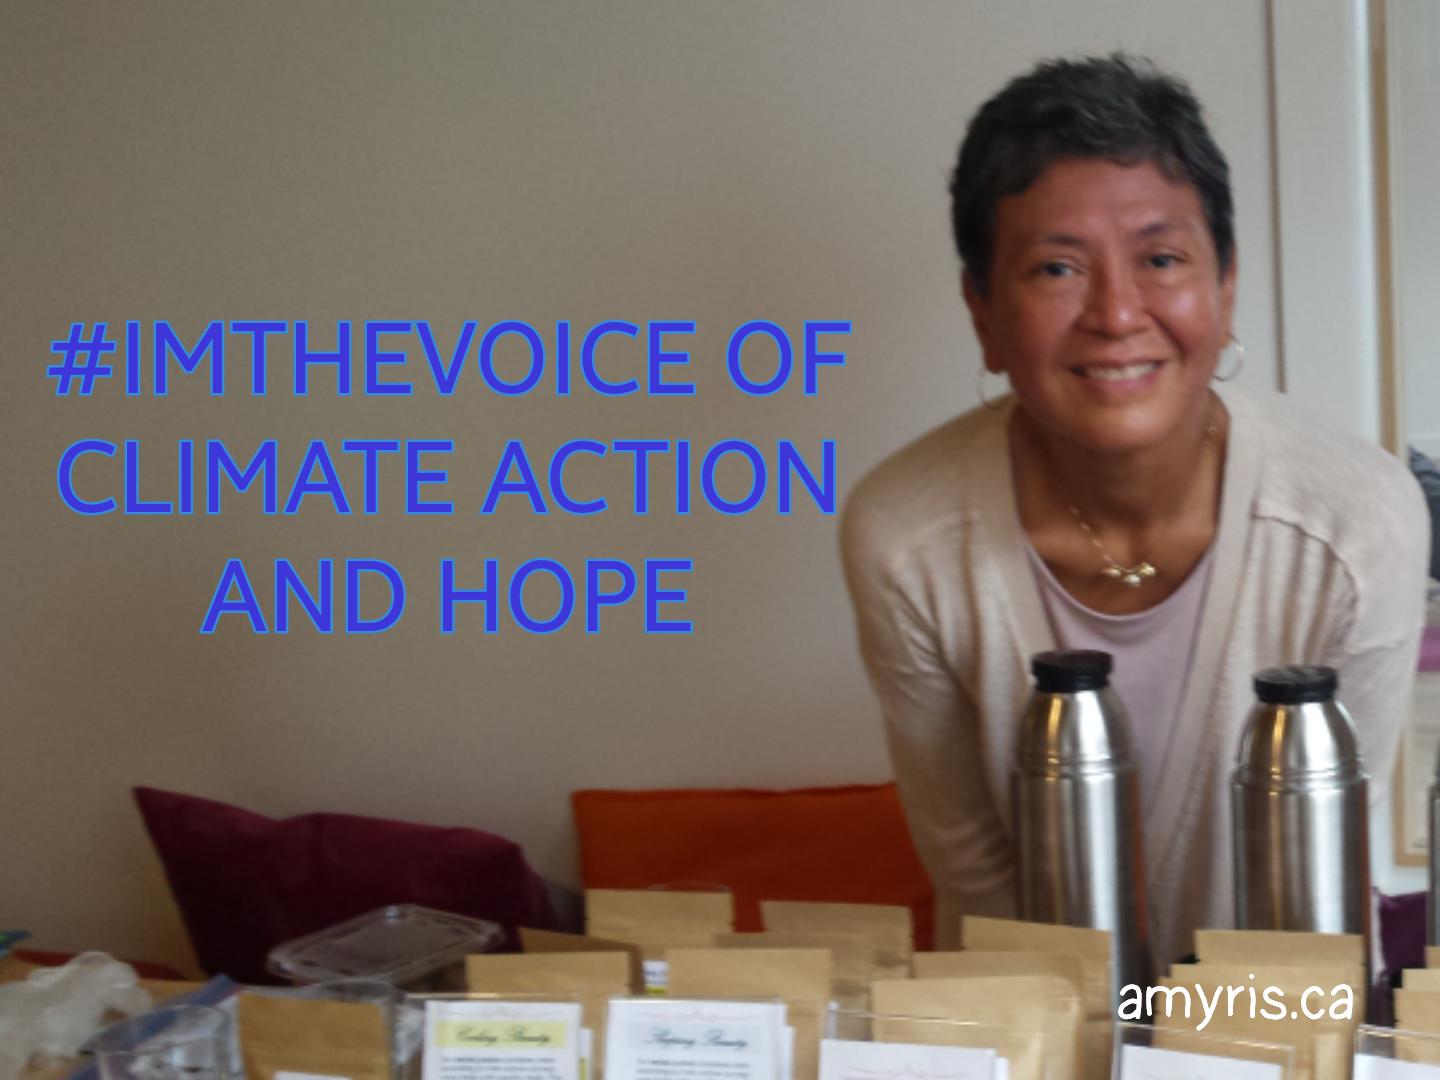 I am the voice of climate change and hope